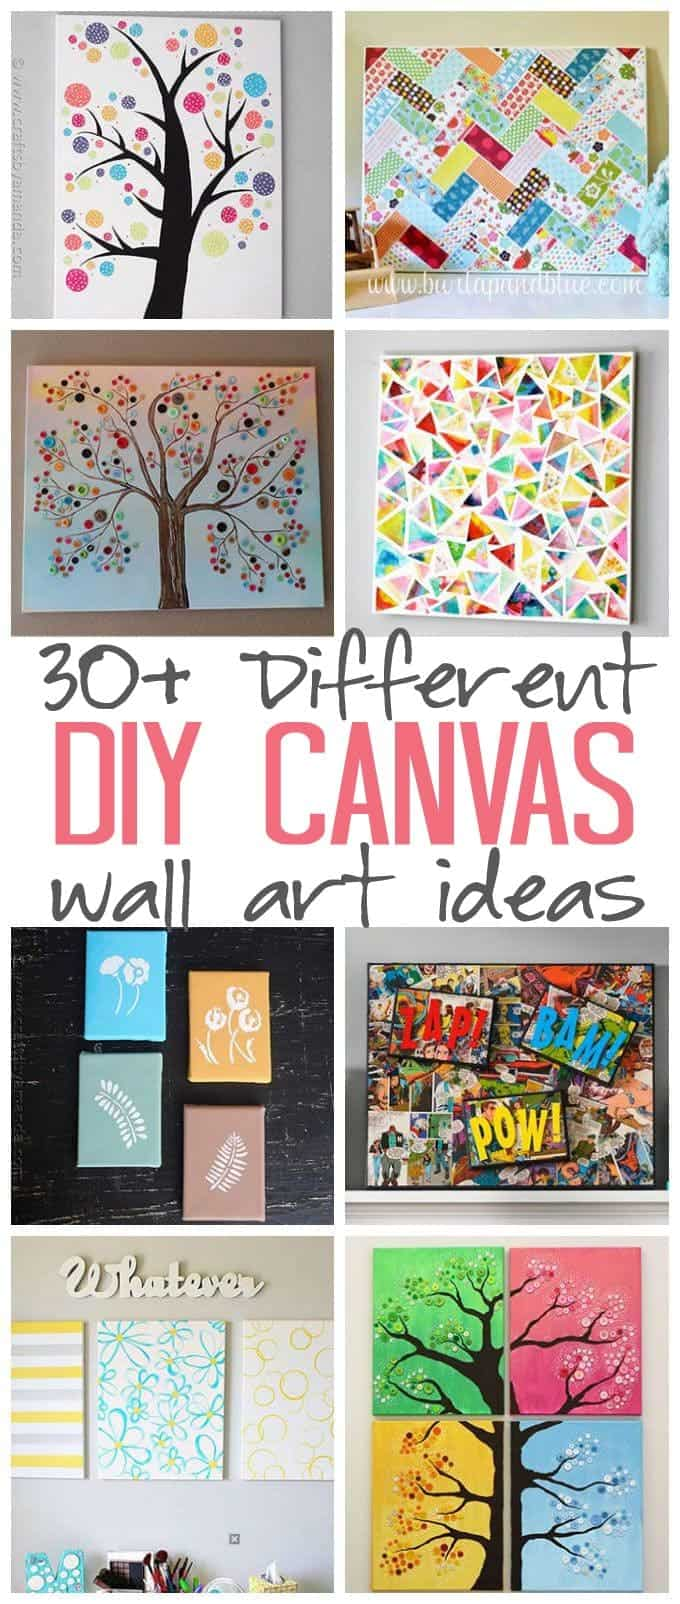 Diy canvas wall art ideas 30 canvas tutorials solutioingenieria